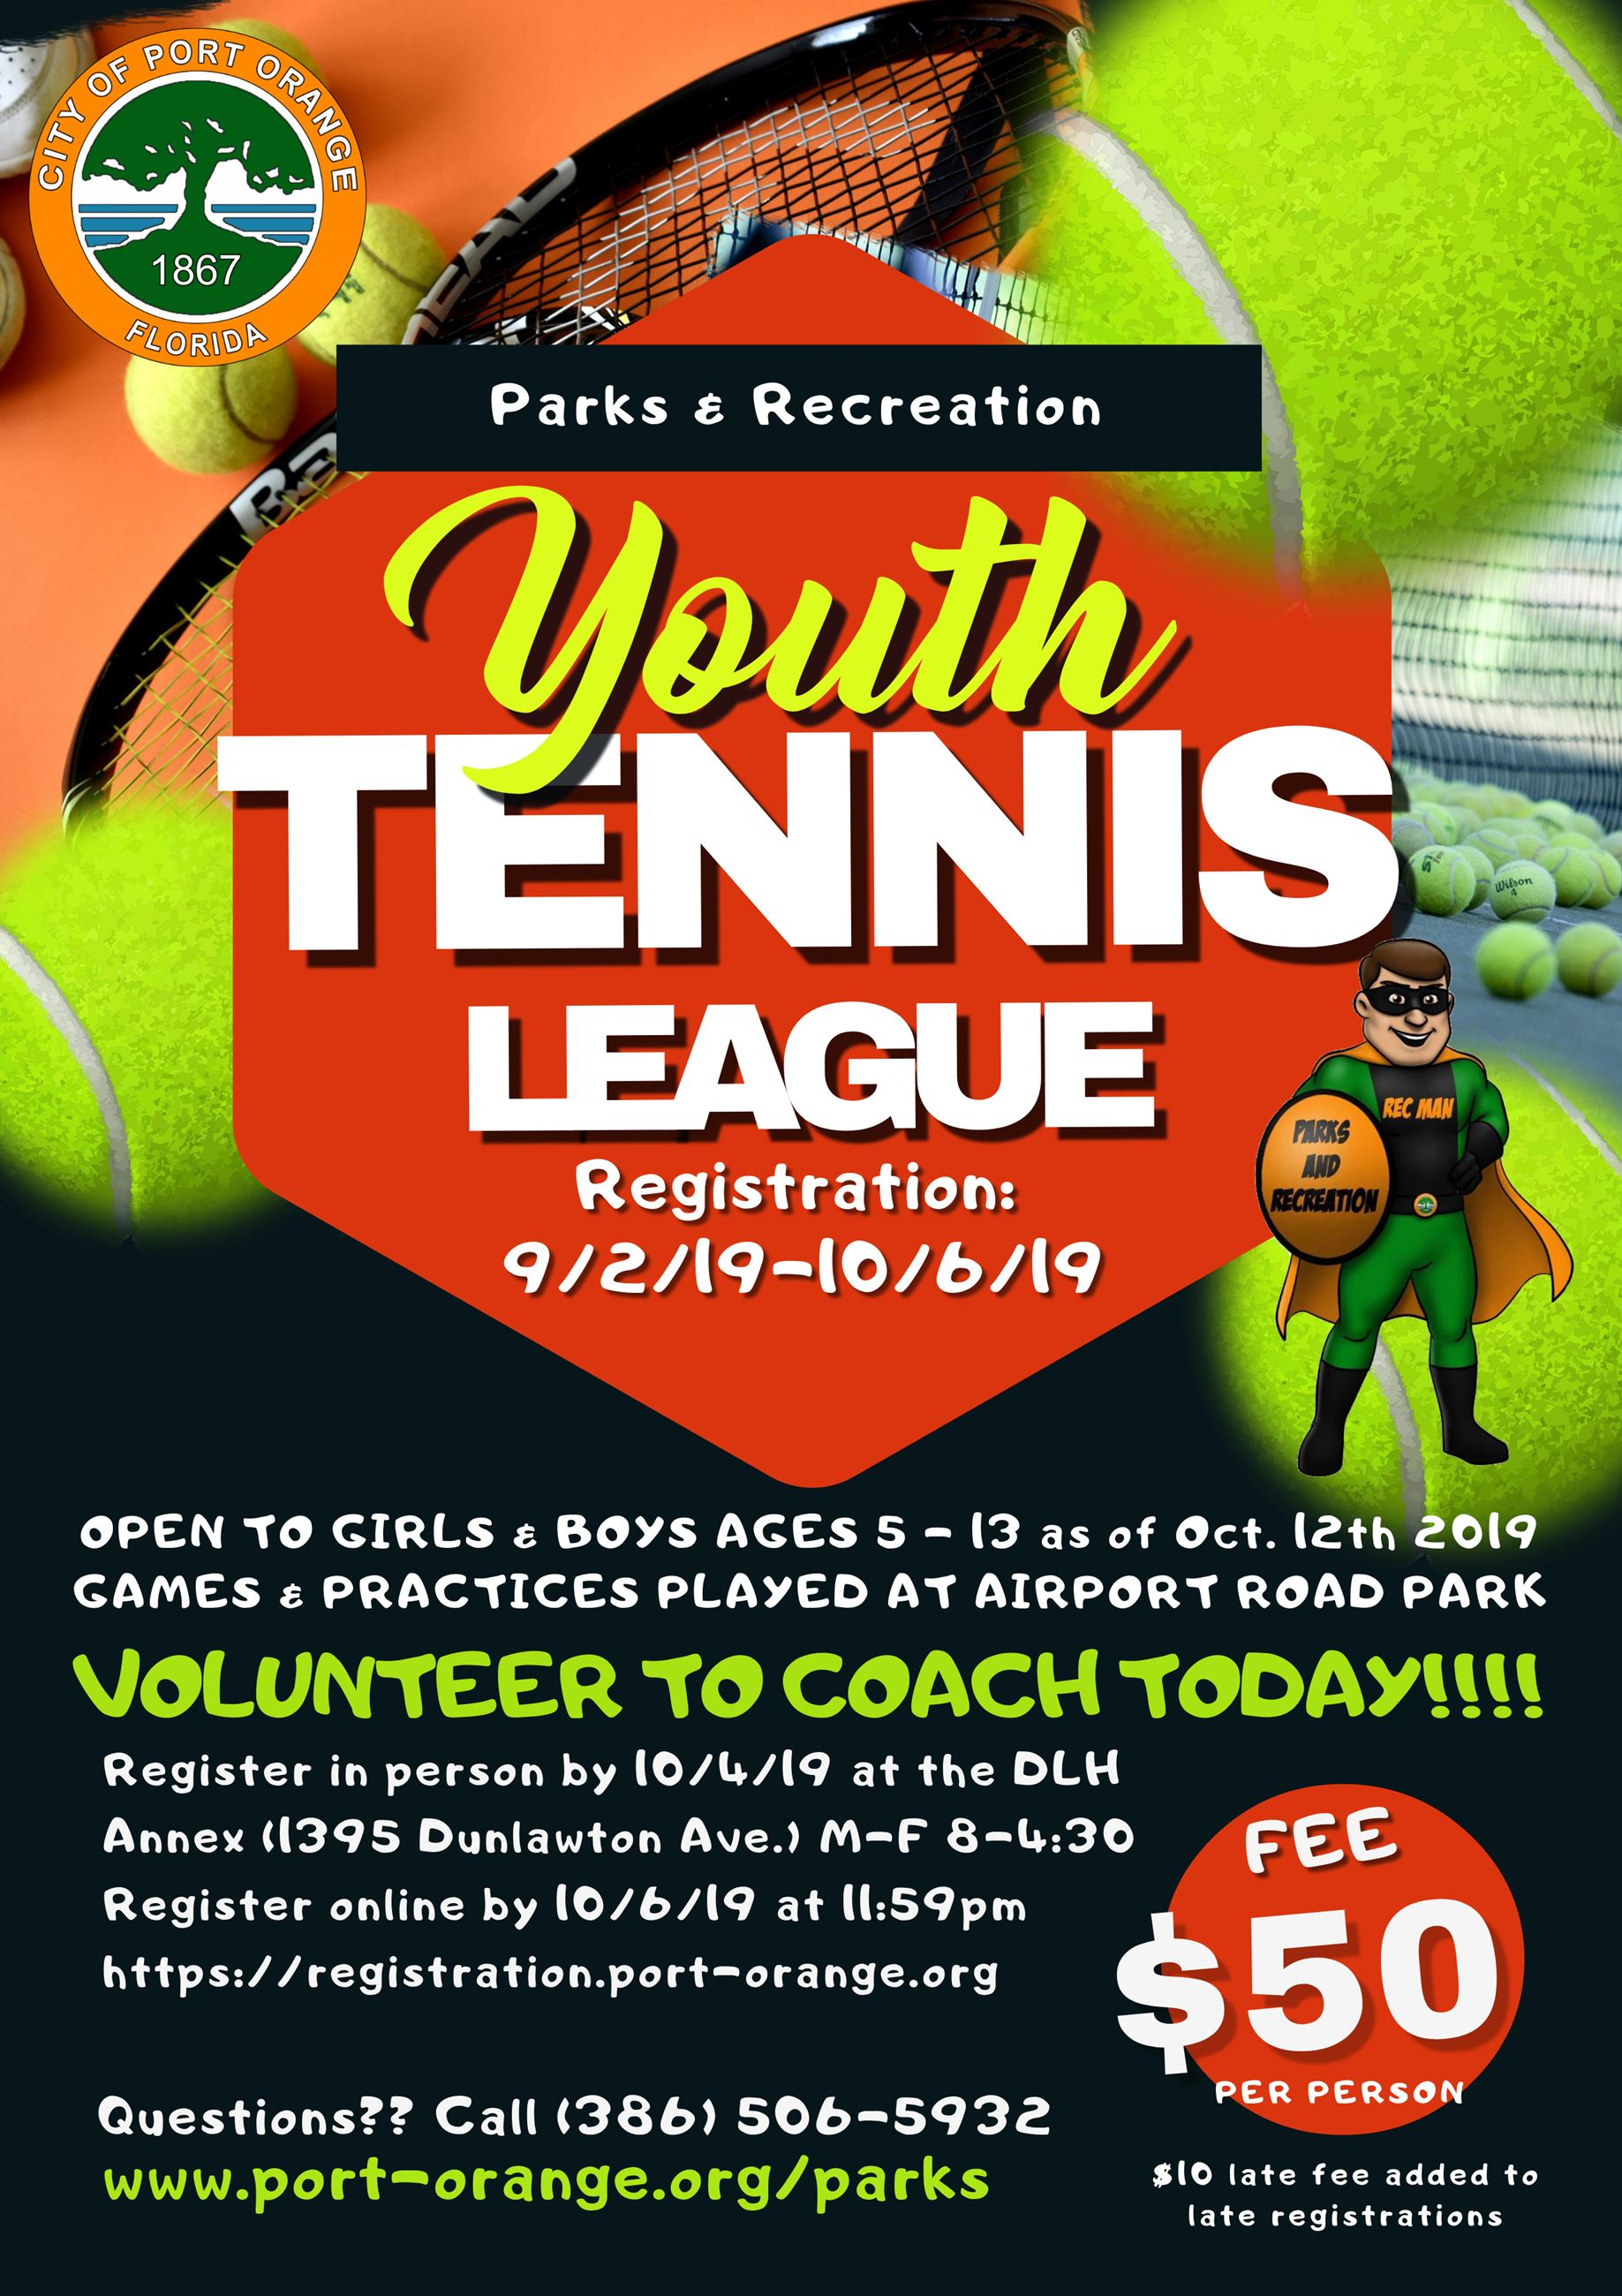 Fall 2019 Youth Tennis flyer. Call 385-506-5932 for more information.